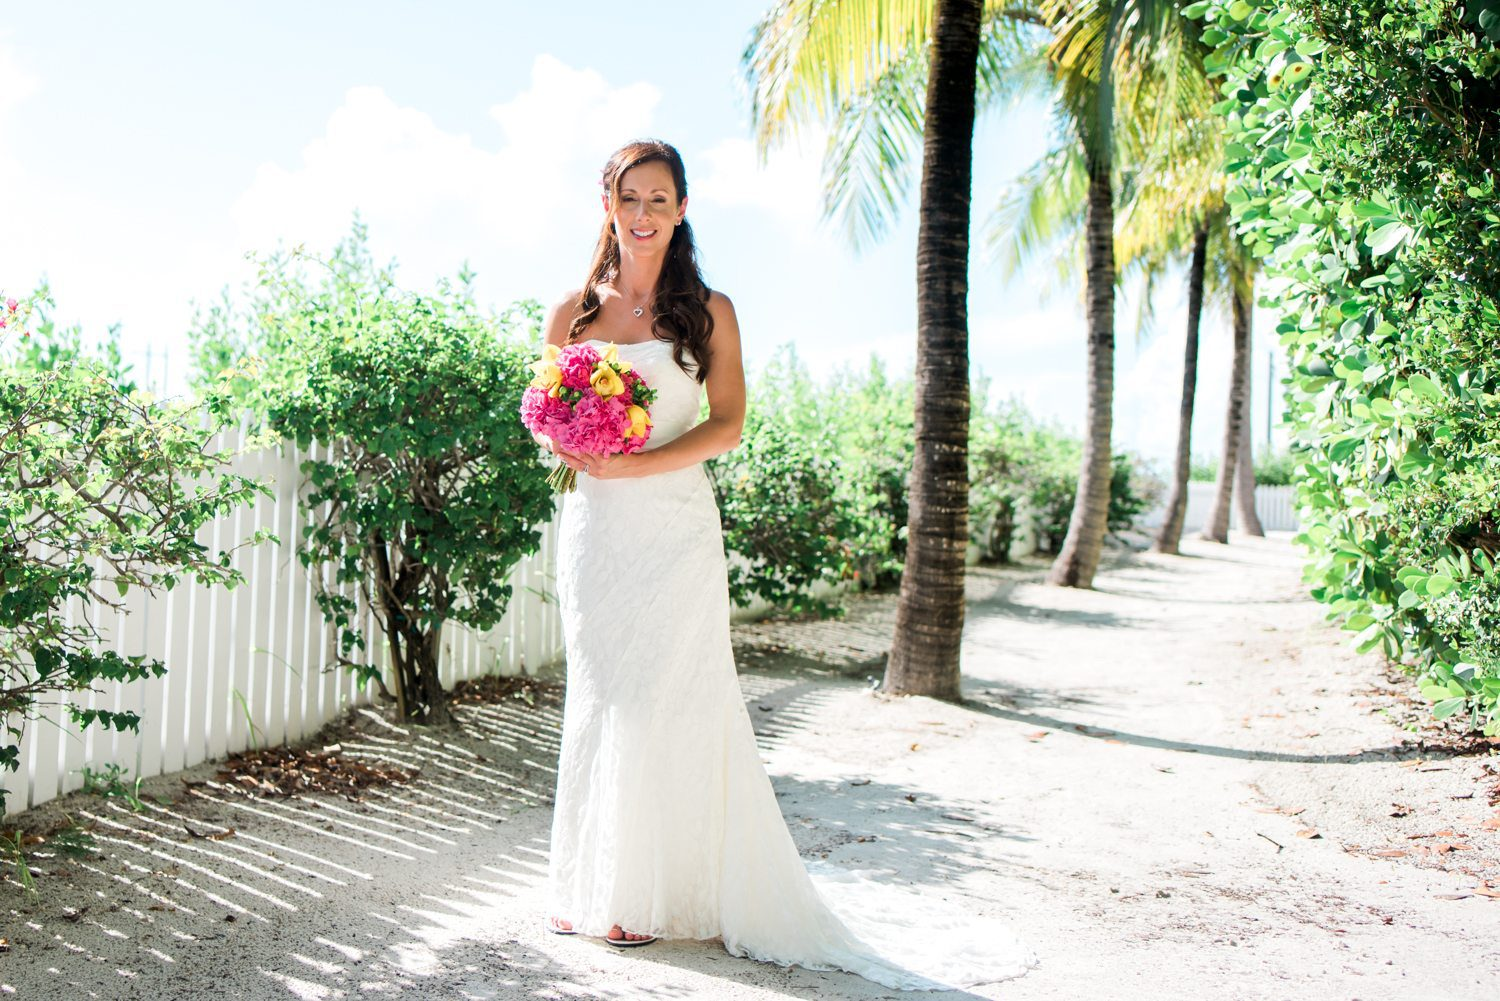 Tracey Joe Key West Garden Club 10 - Tracey & Joe | Key West Wedding Photographer | Key West Garden Club